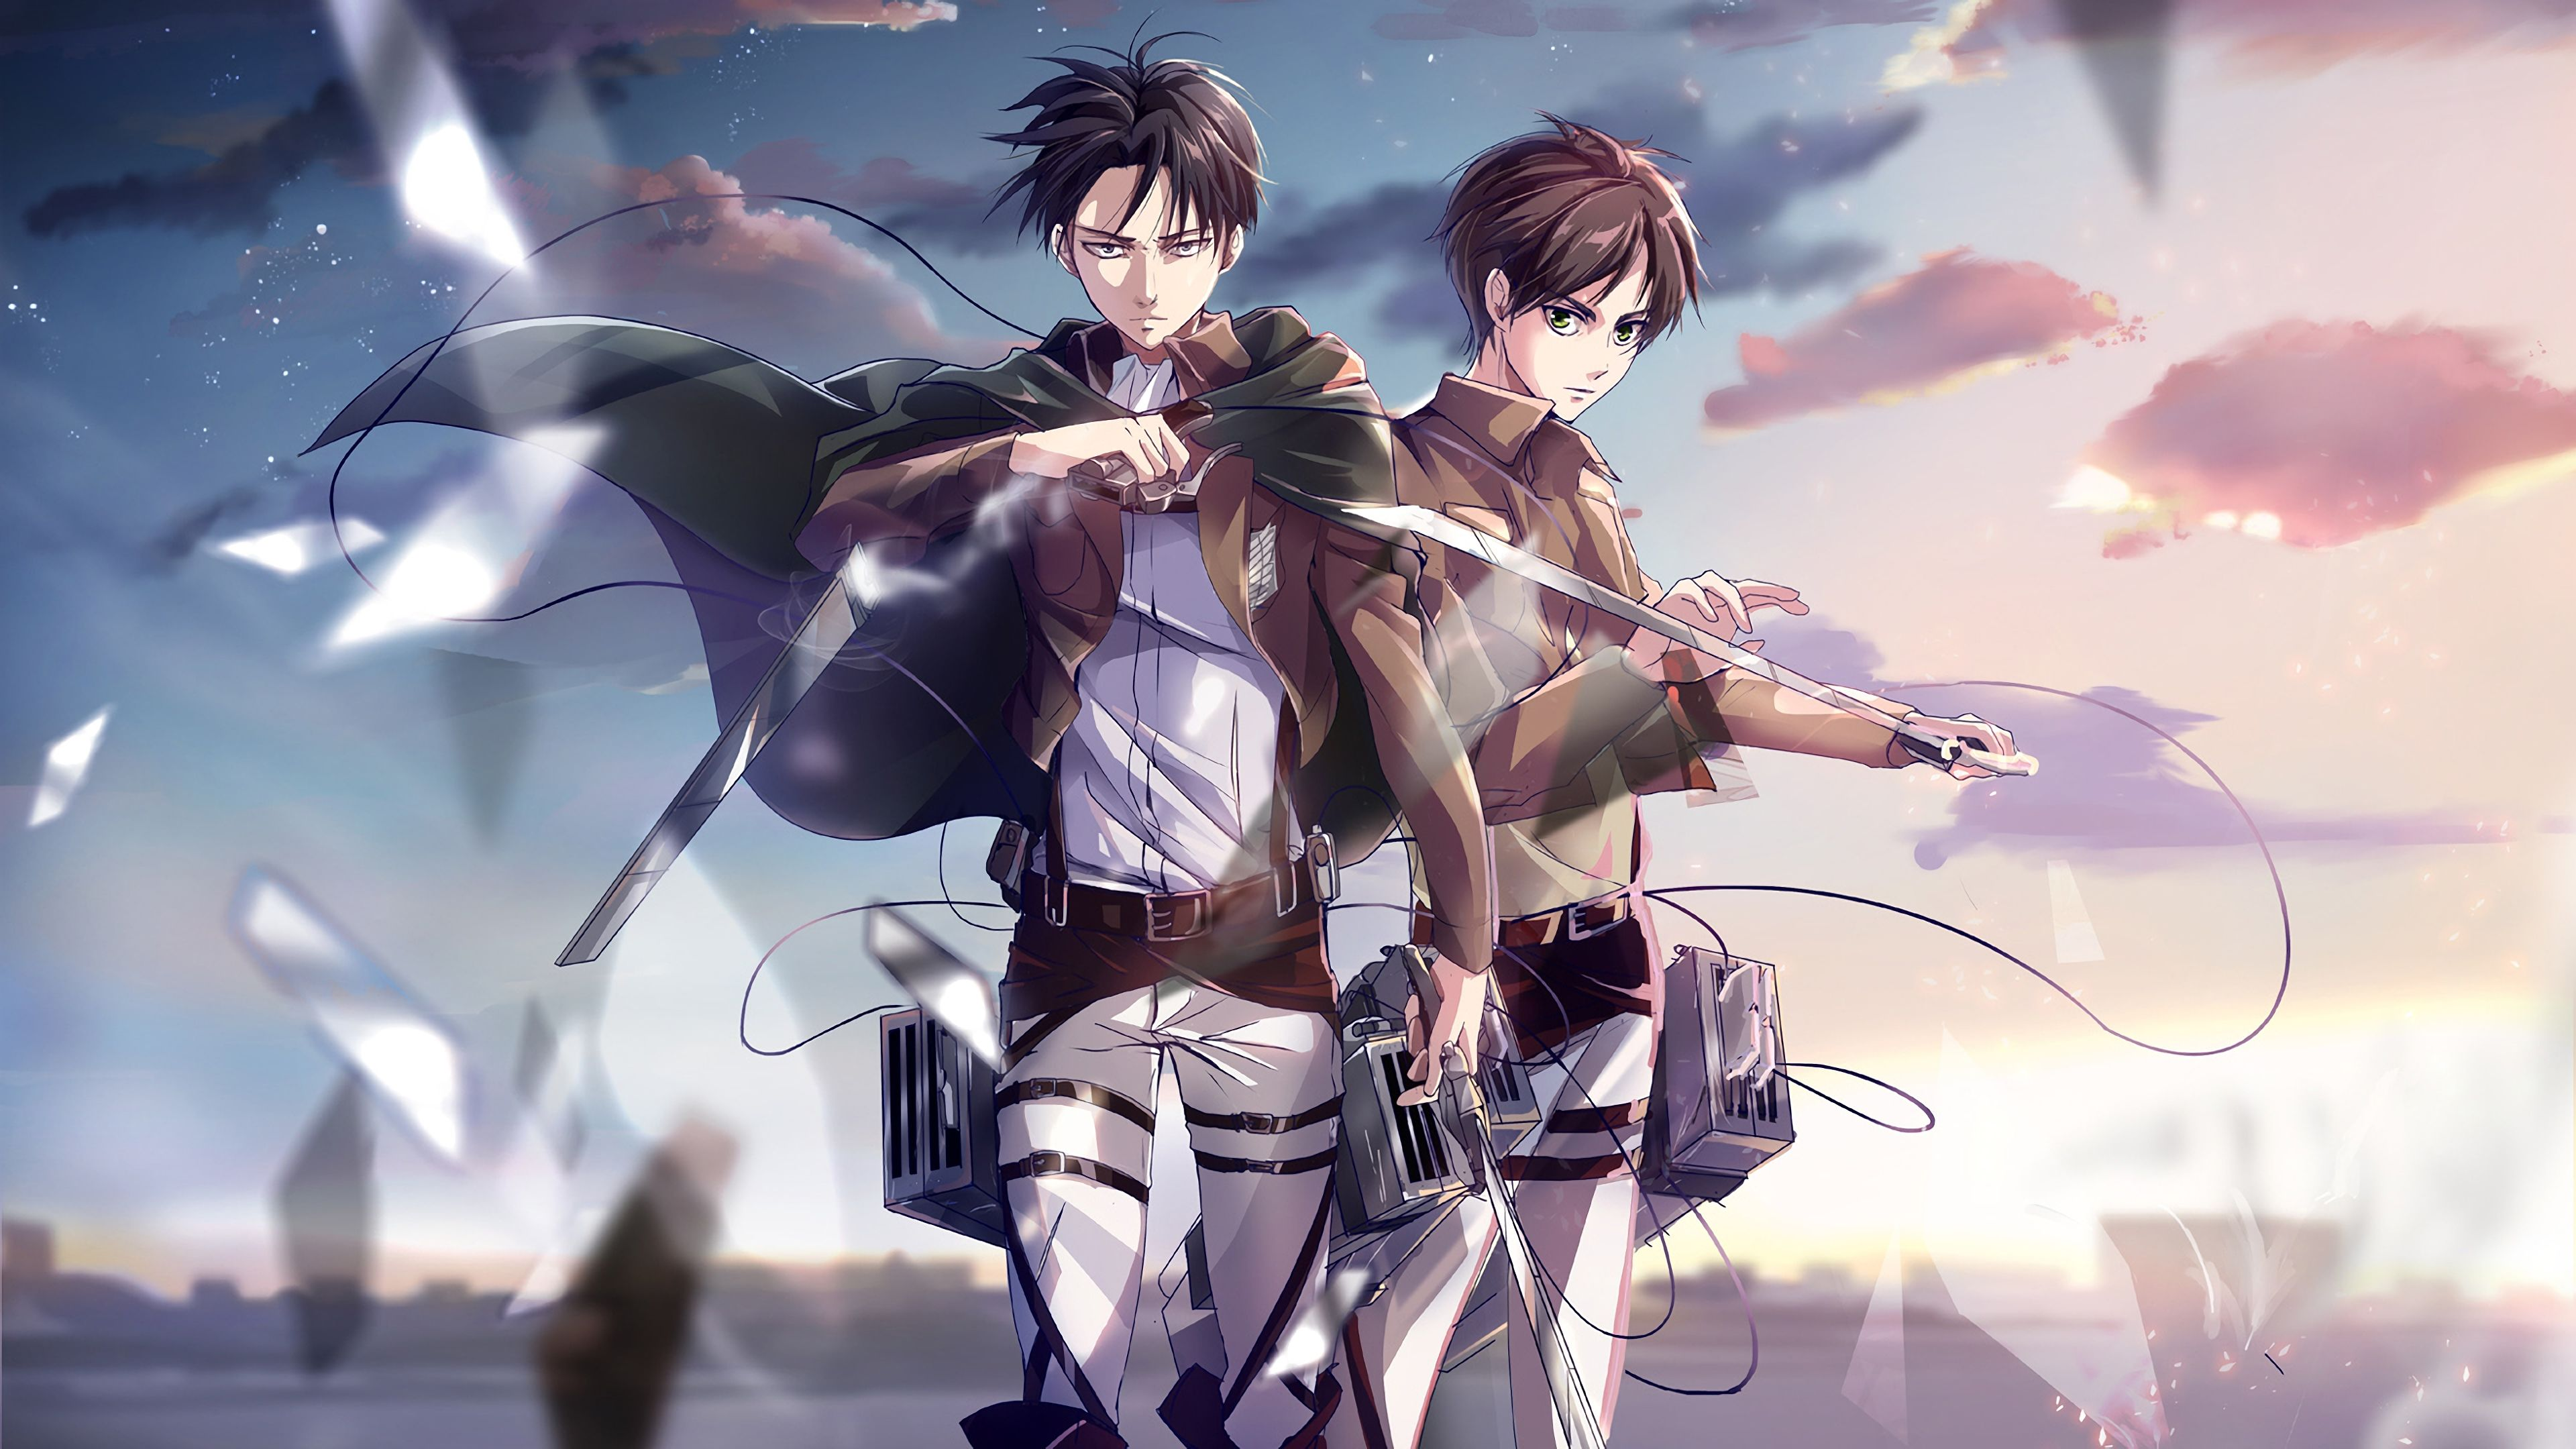 Attack On Titan Levi Wallpapers - Top Free Attack On Titan ...